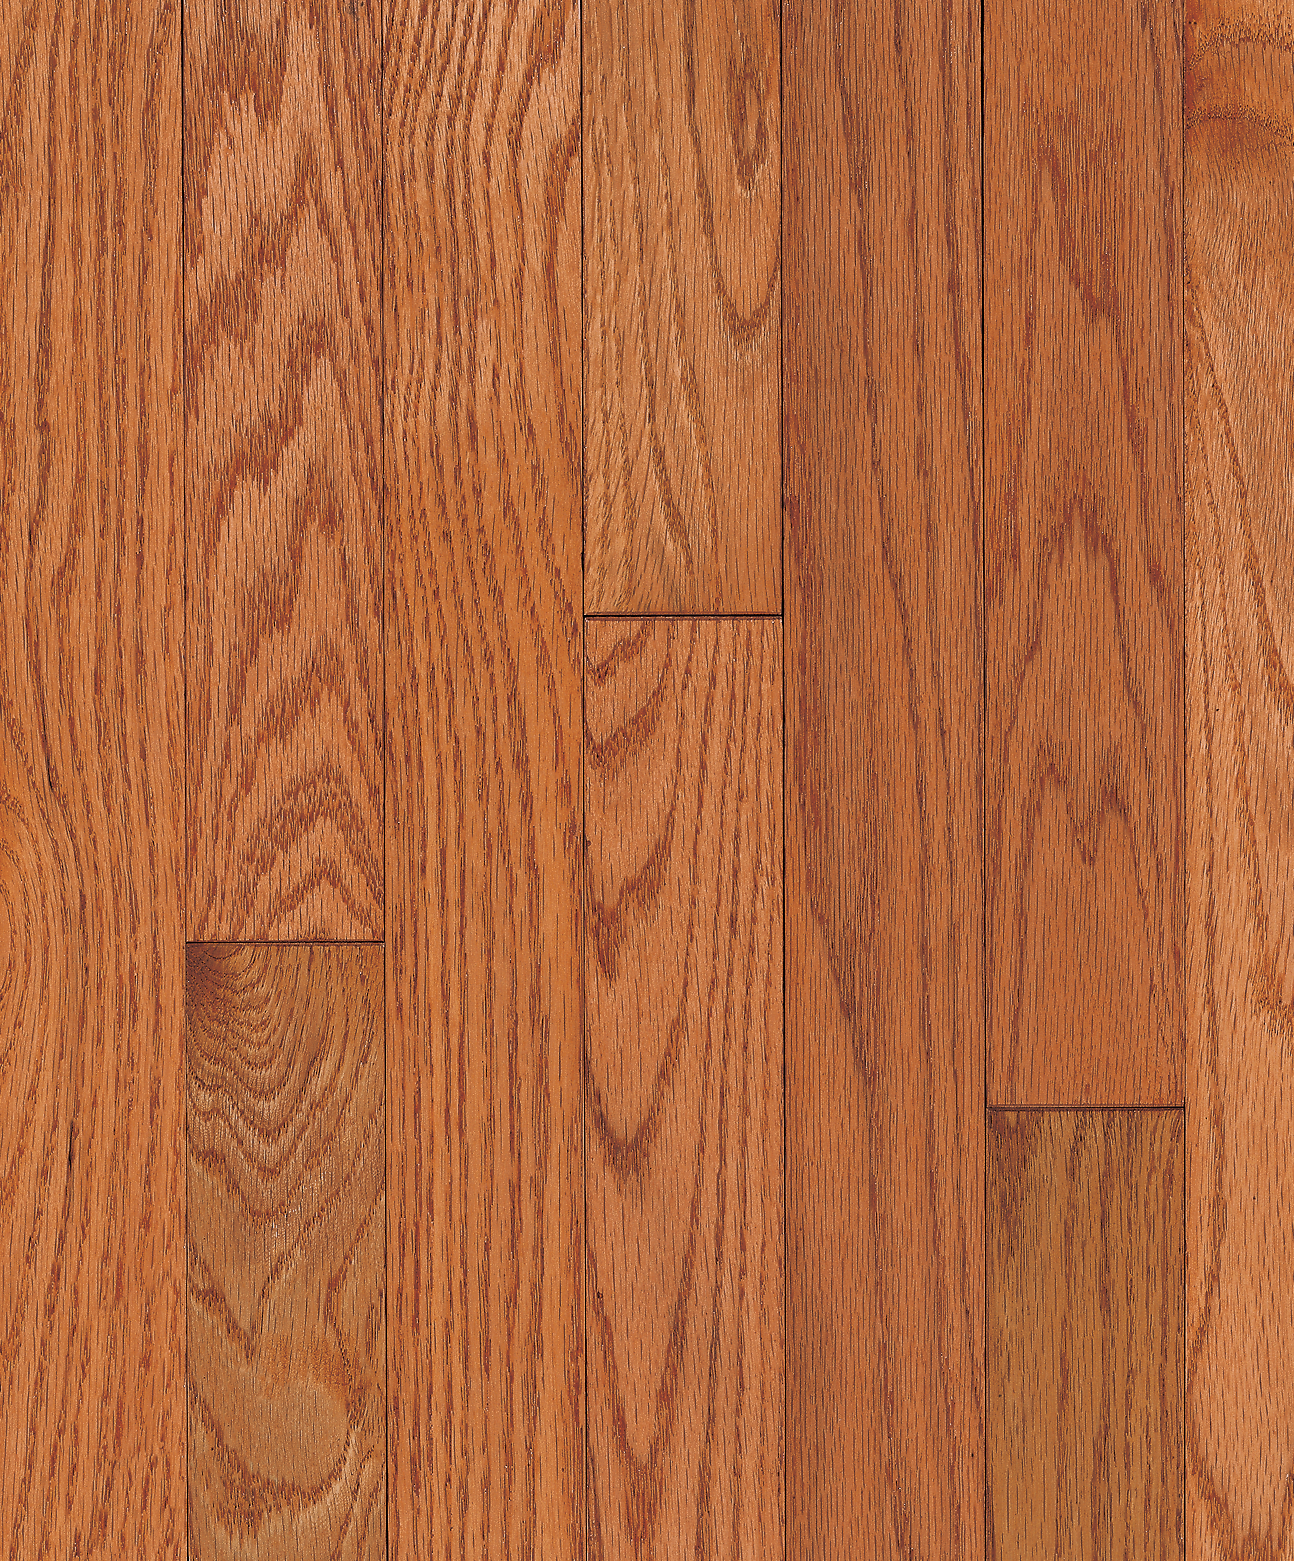 Ascot Strip Topaz Solid Hardwood 5188T